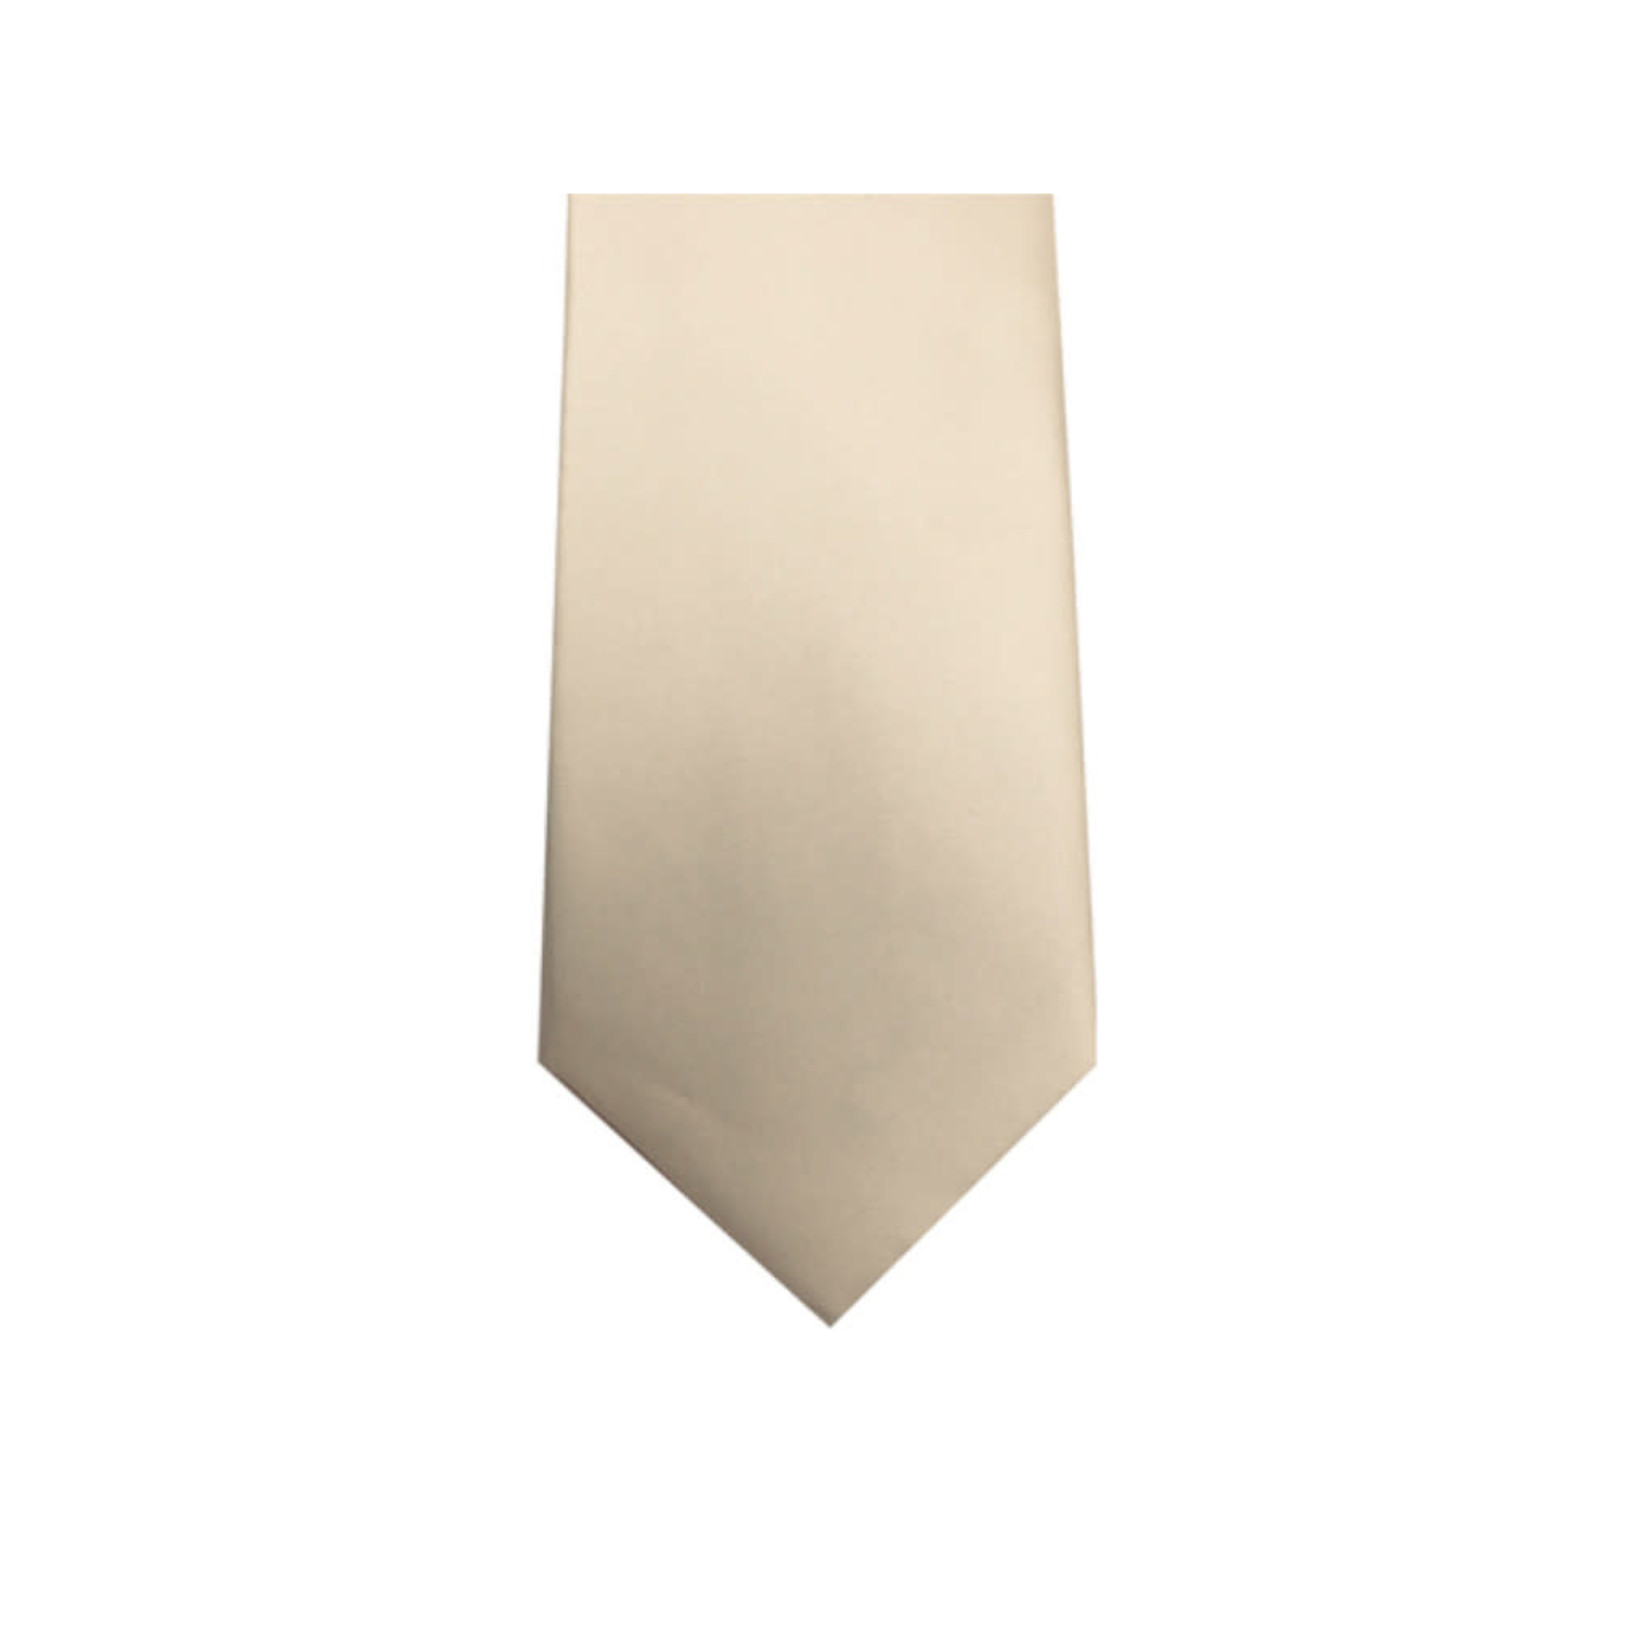 Knotz M100-60 Solid Ivory Tie